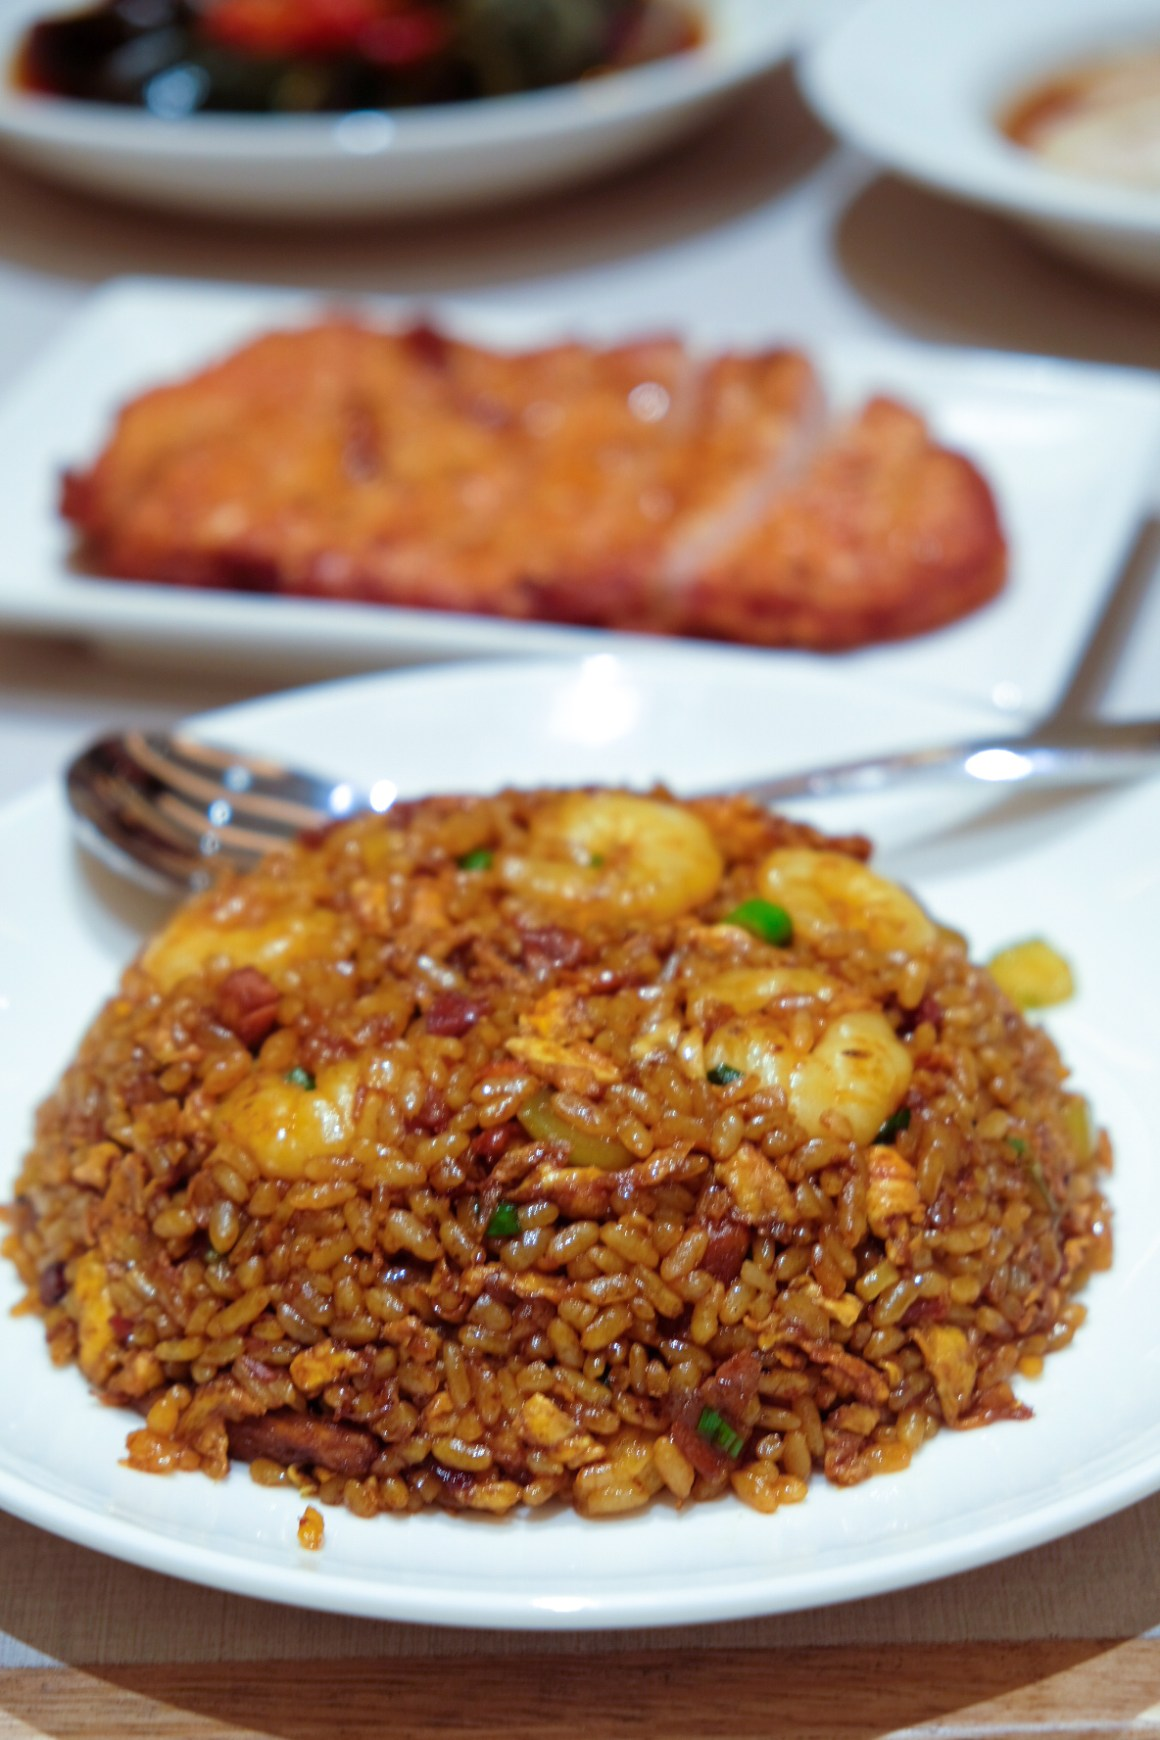 Paradise Dynasty At Suntec City - Fried Rice in Shanghai Style